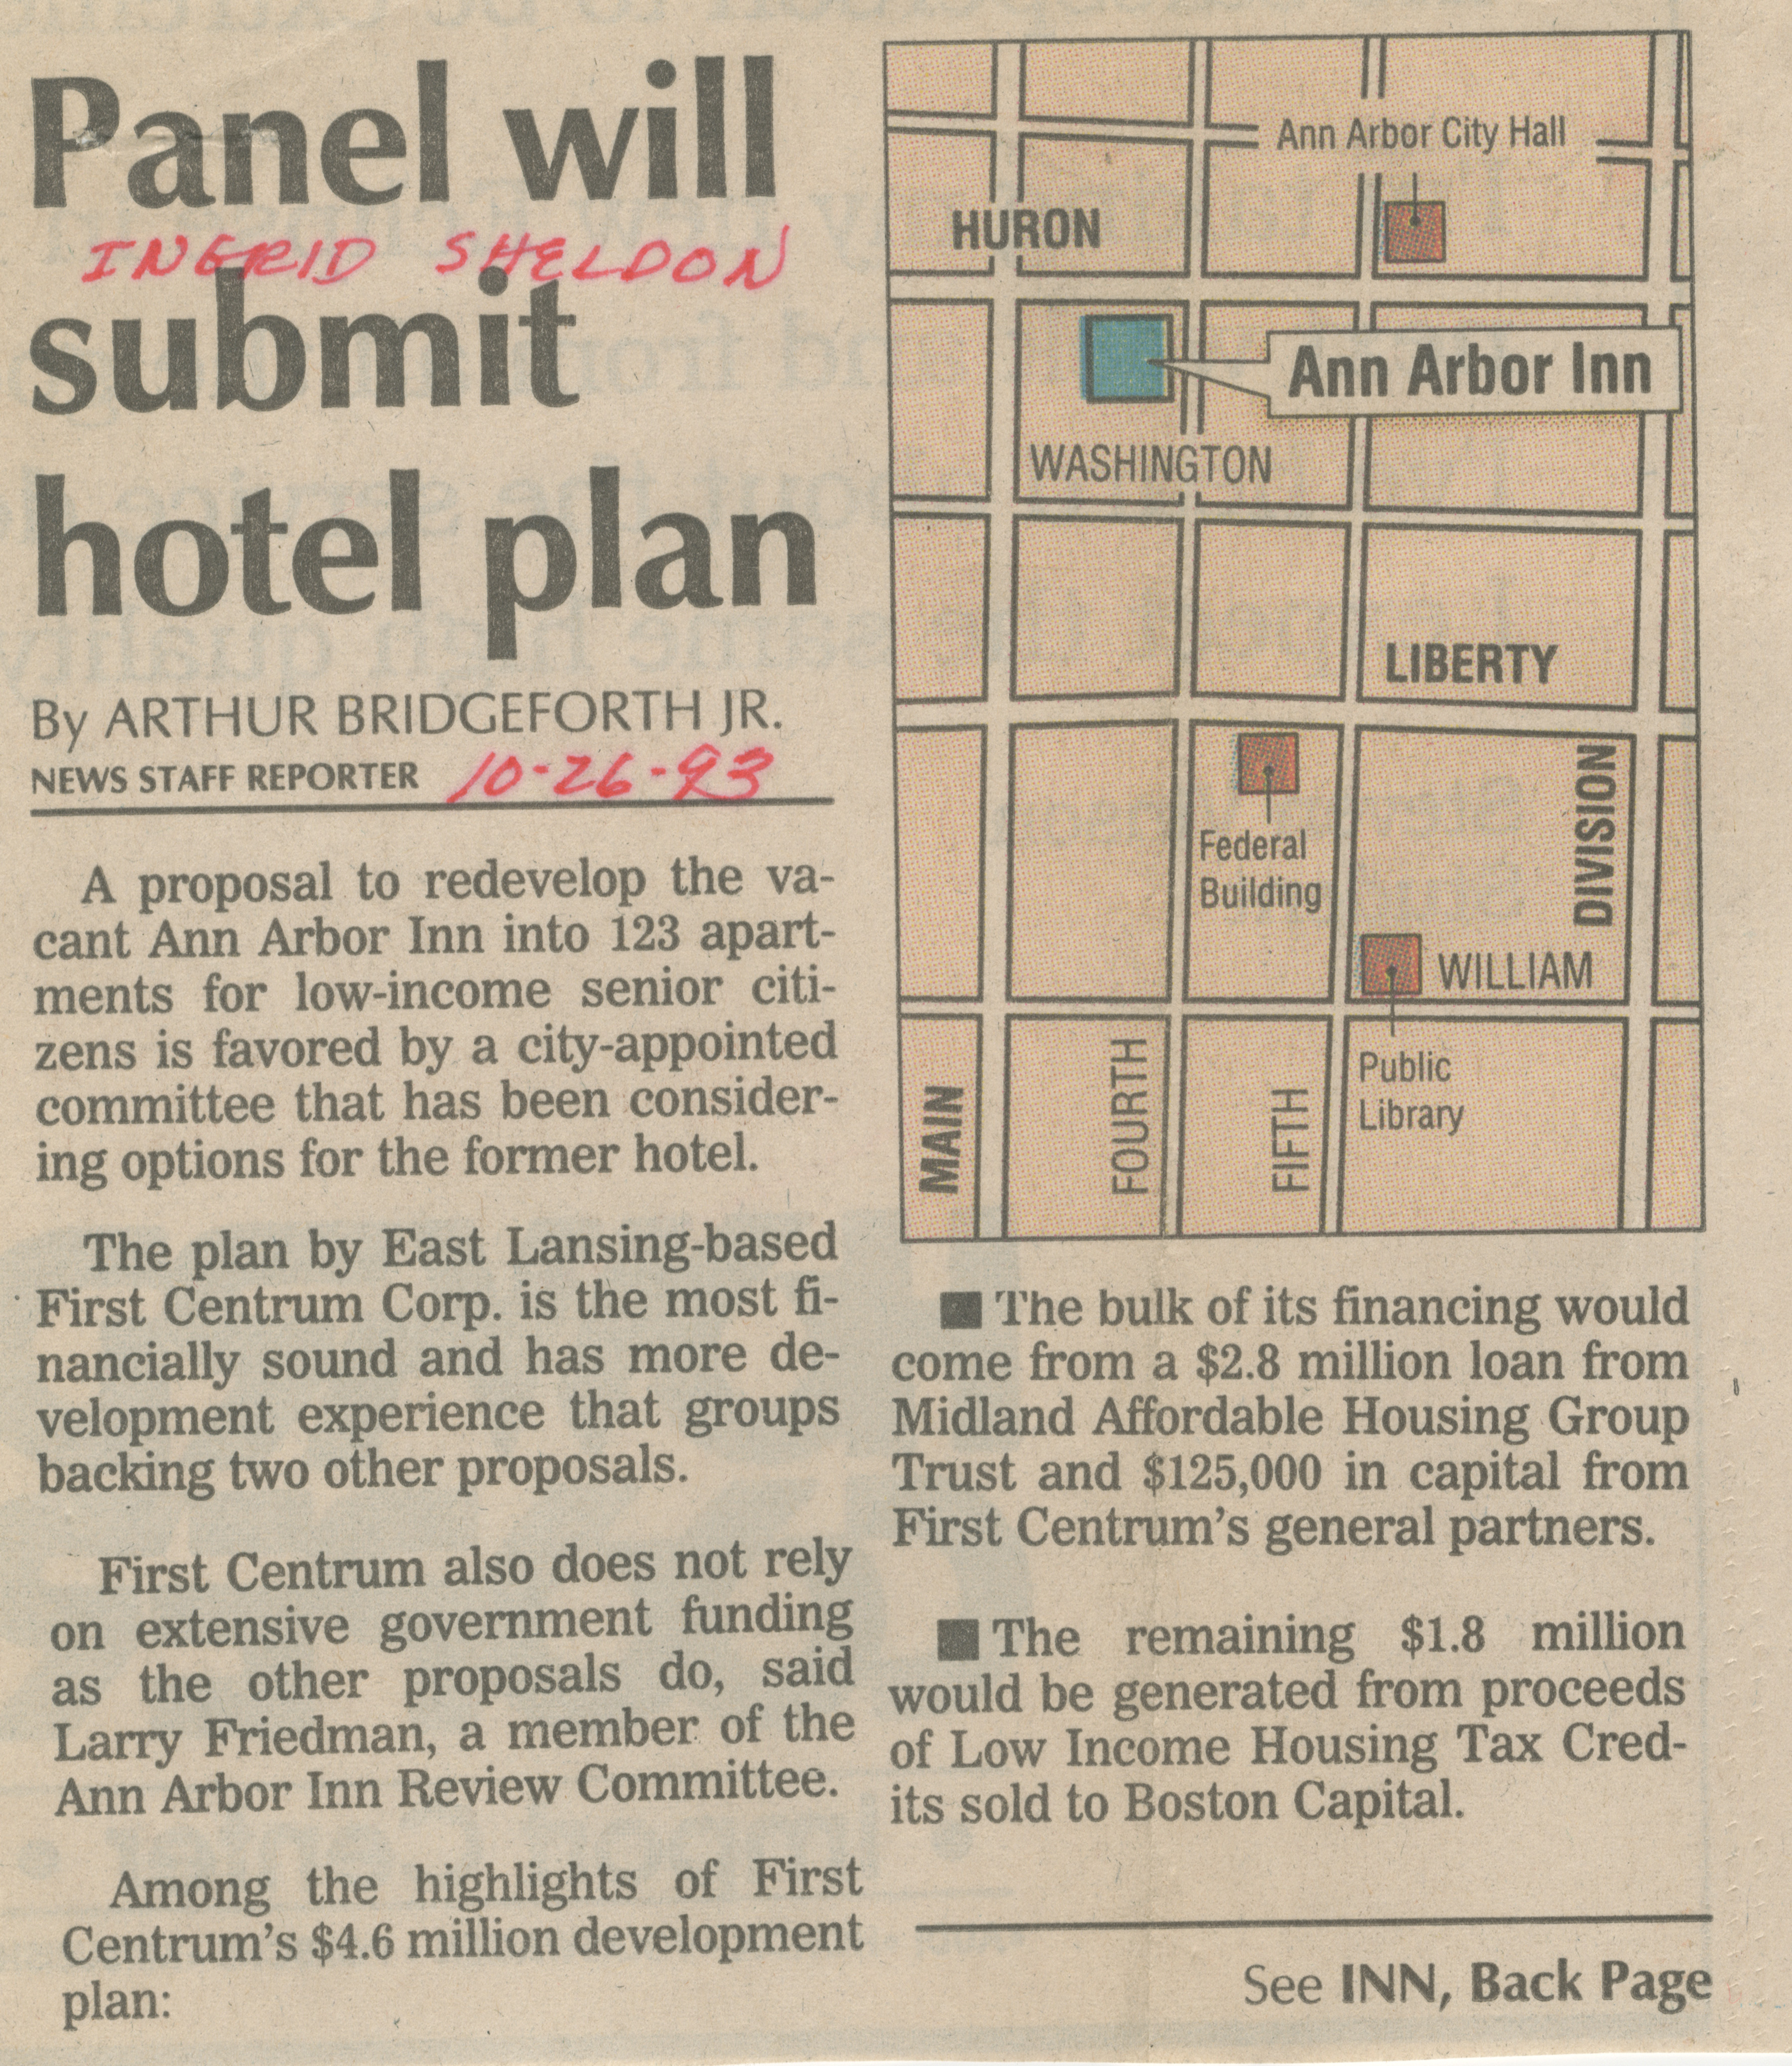 Panel will submit hotel plan image